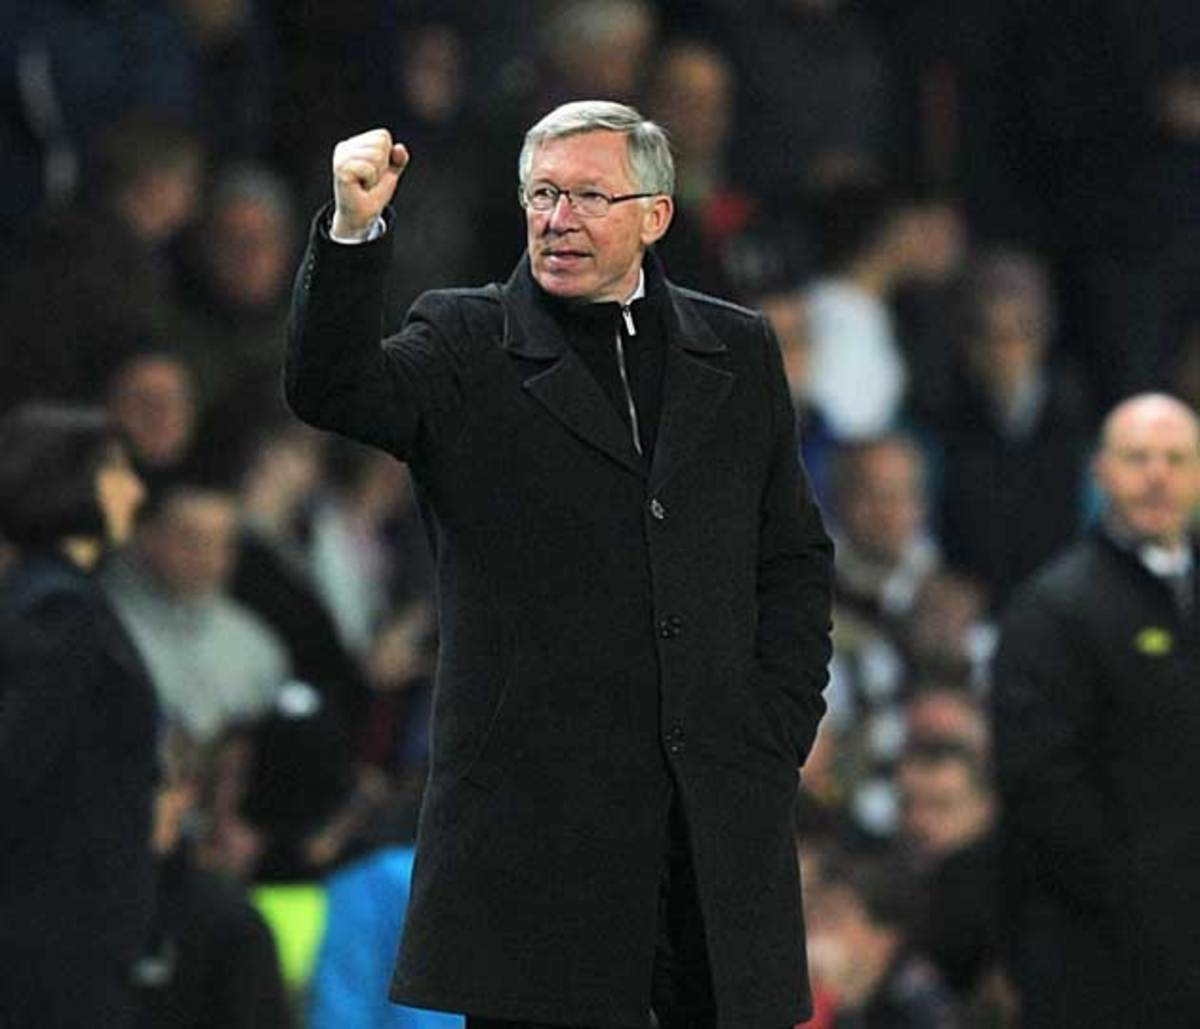 Longtime Manchester United manager Sir Alex Ferguson is one of 12 owners of Telescope.